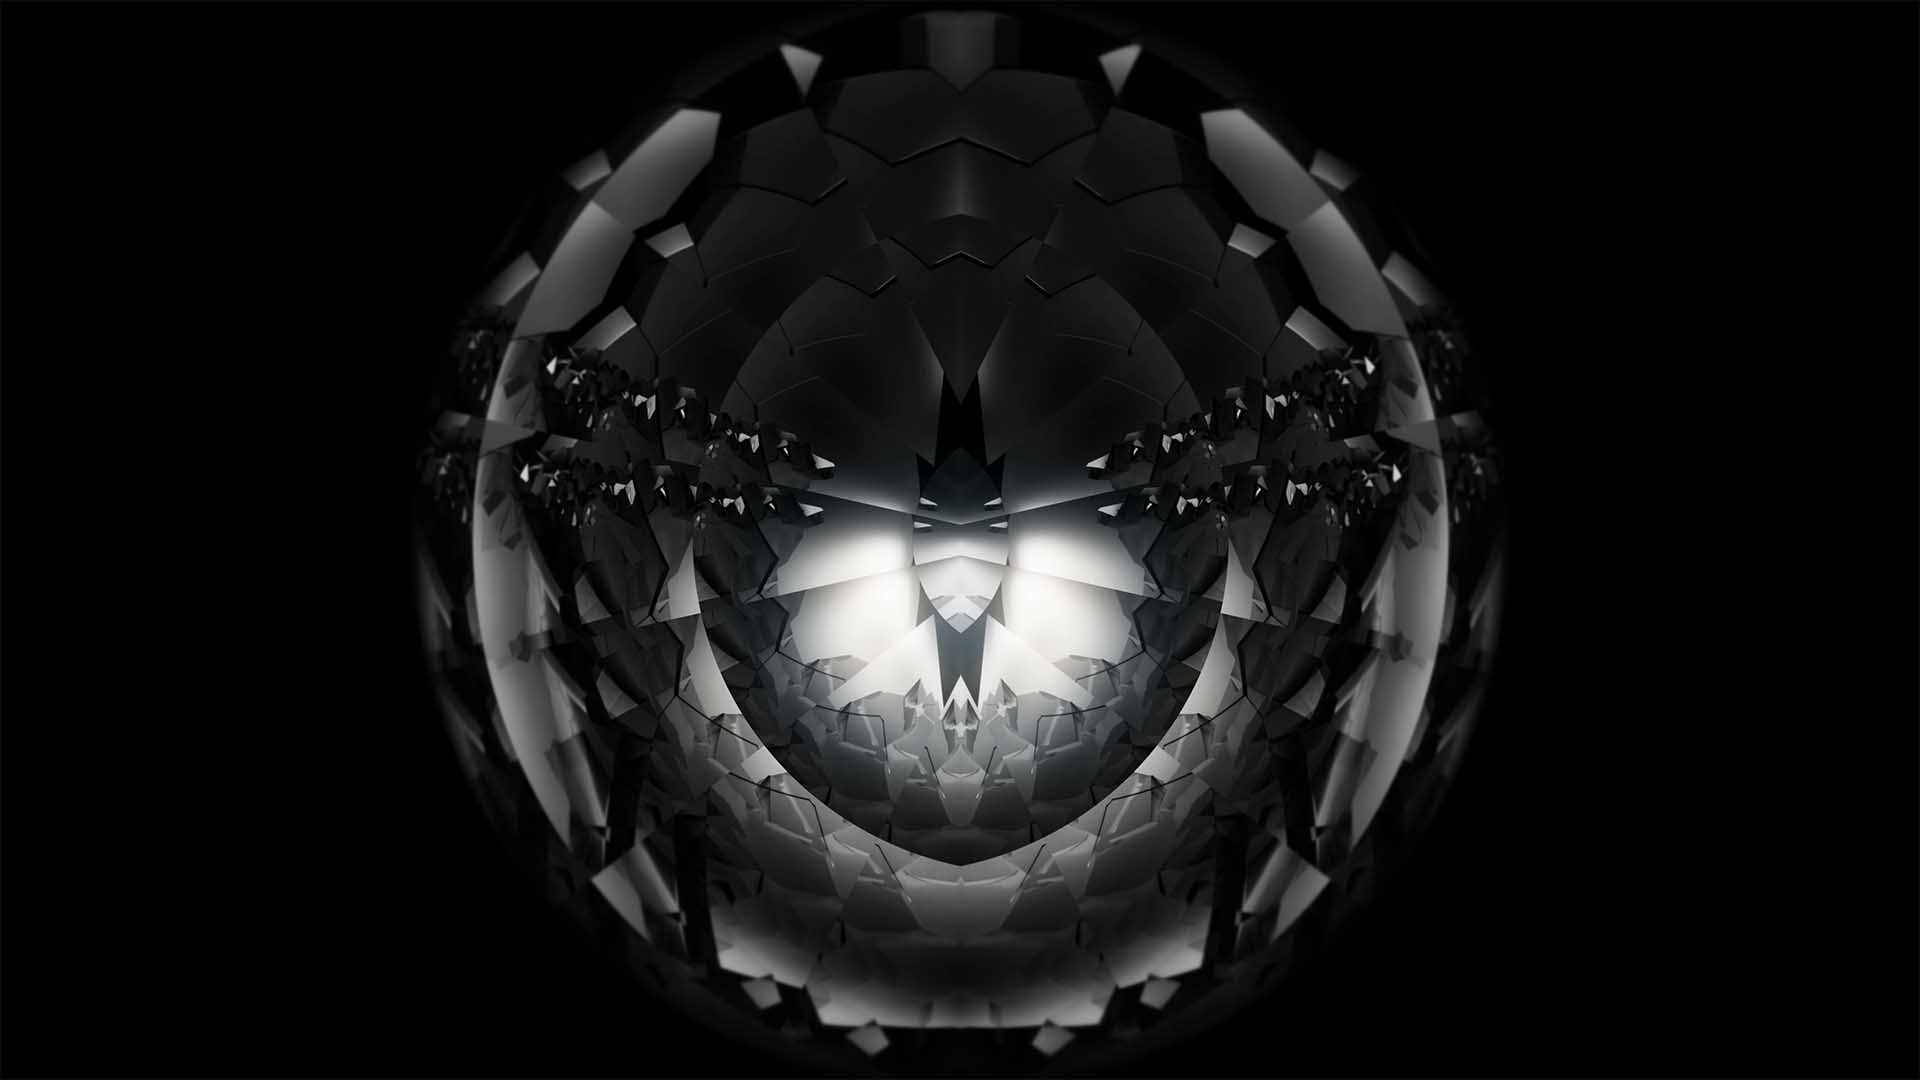 Fulldome projection video mapping